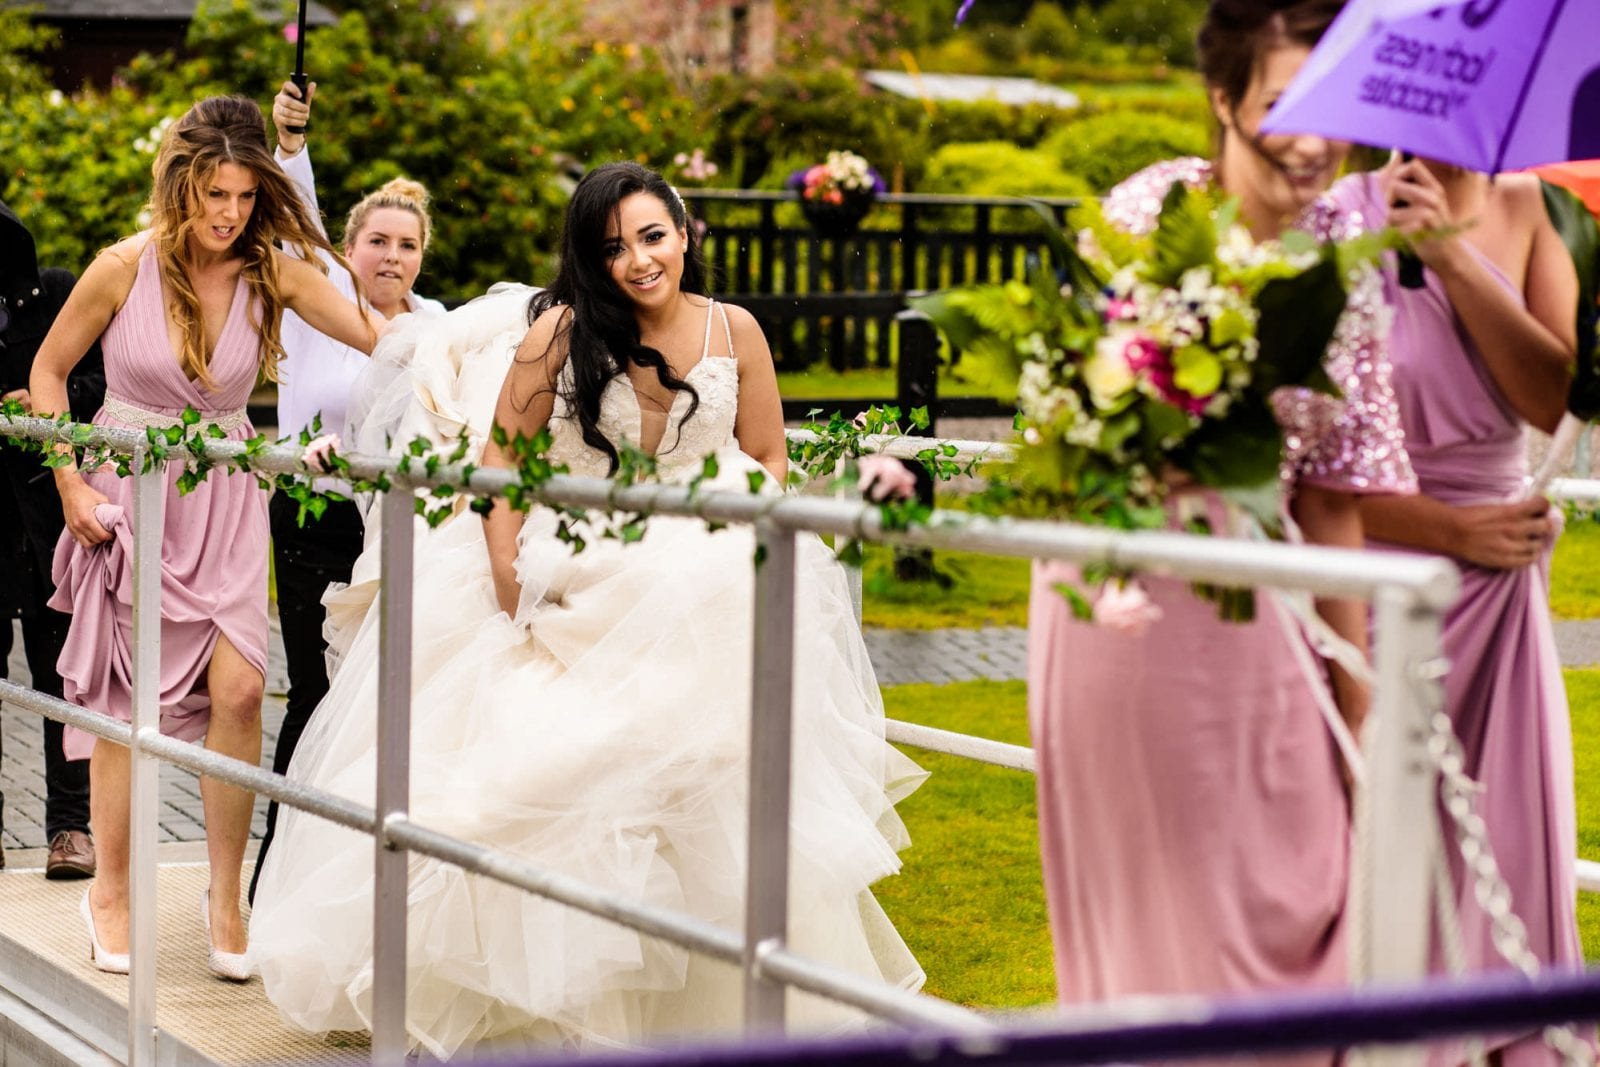 Bride and bridesmaids boarding boat on Loch Ness